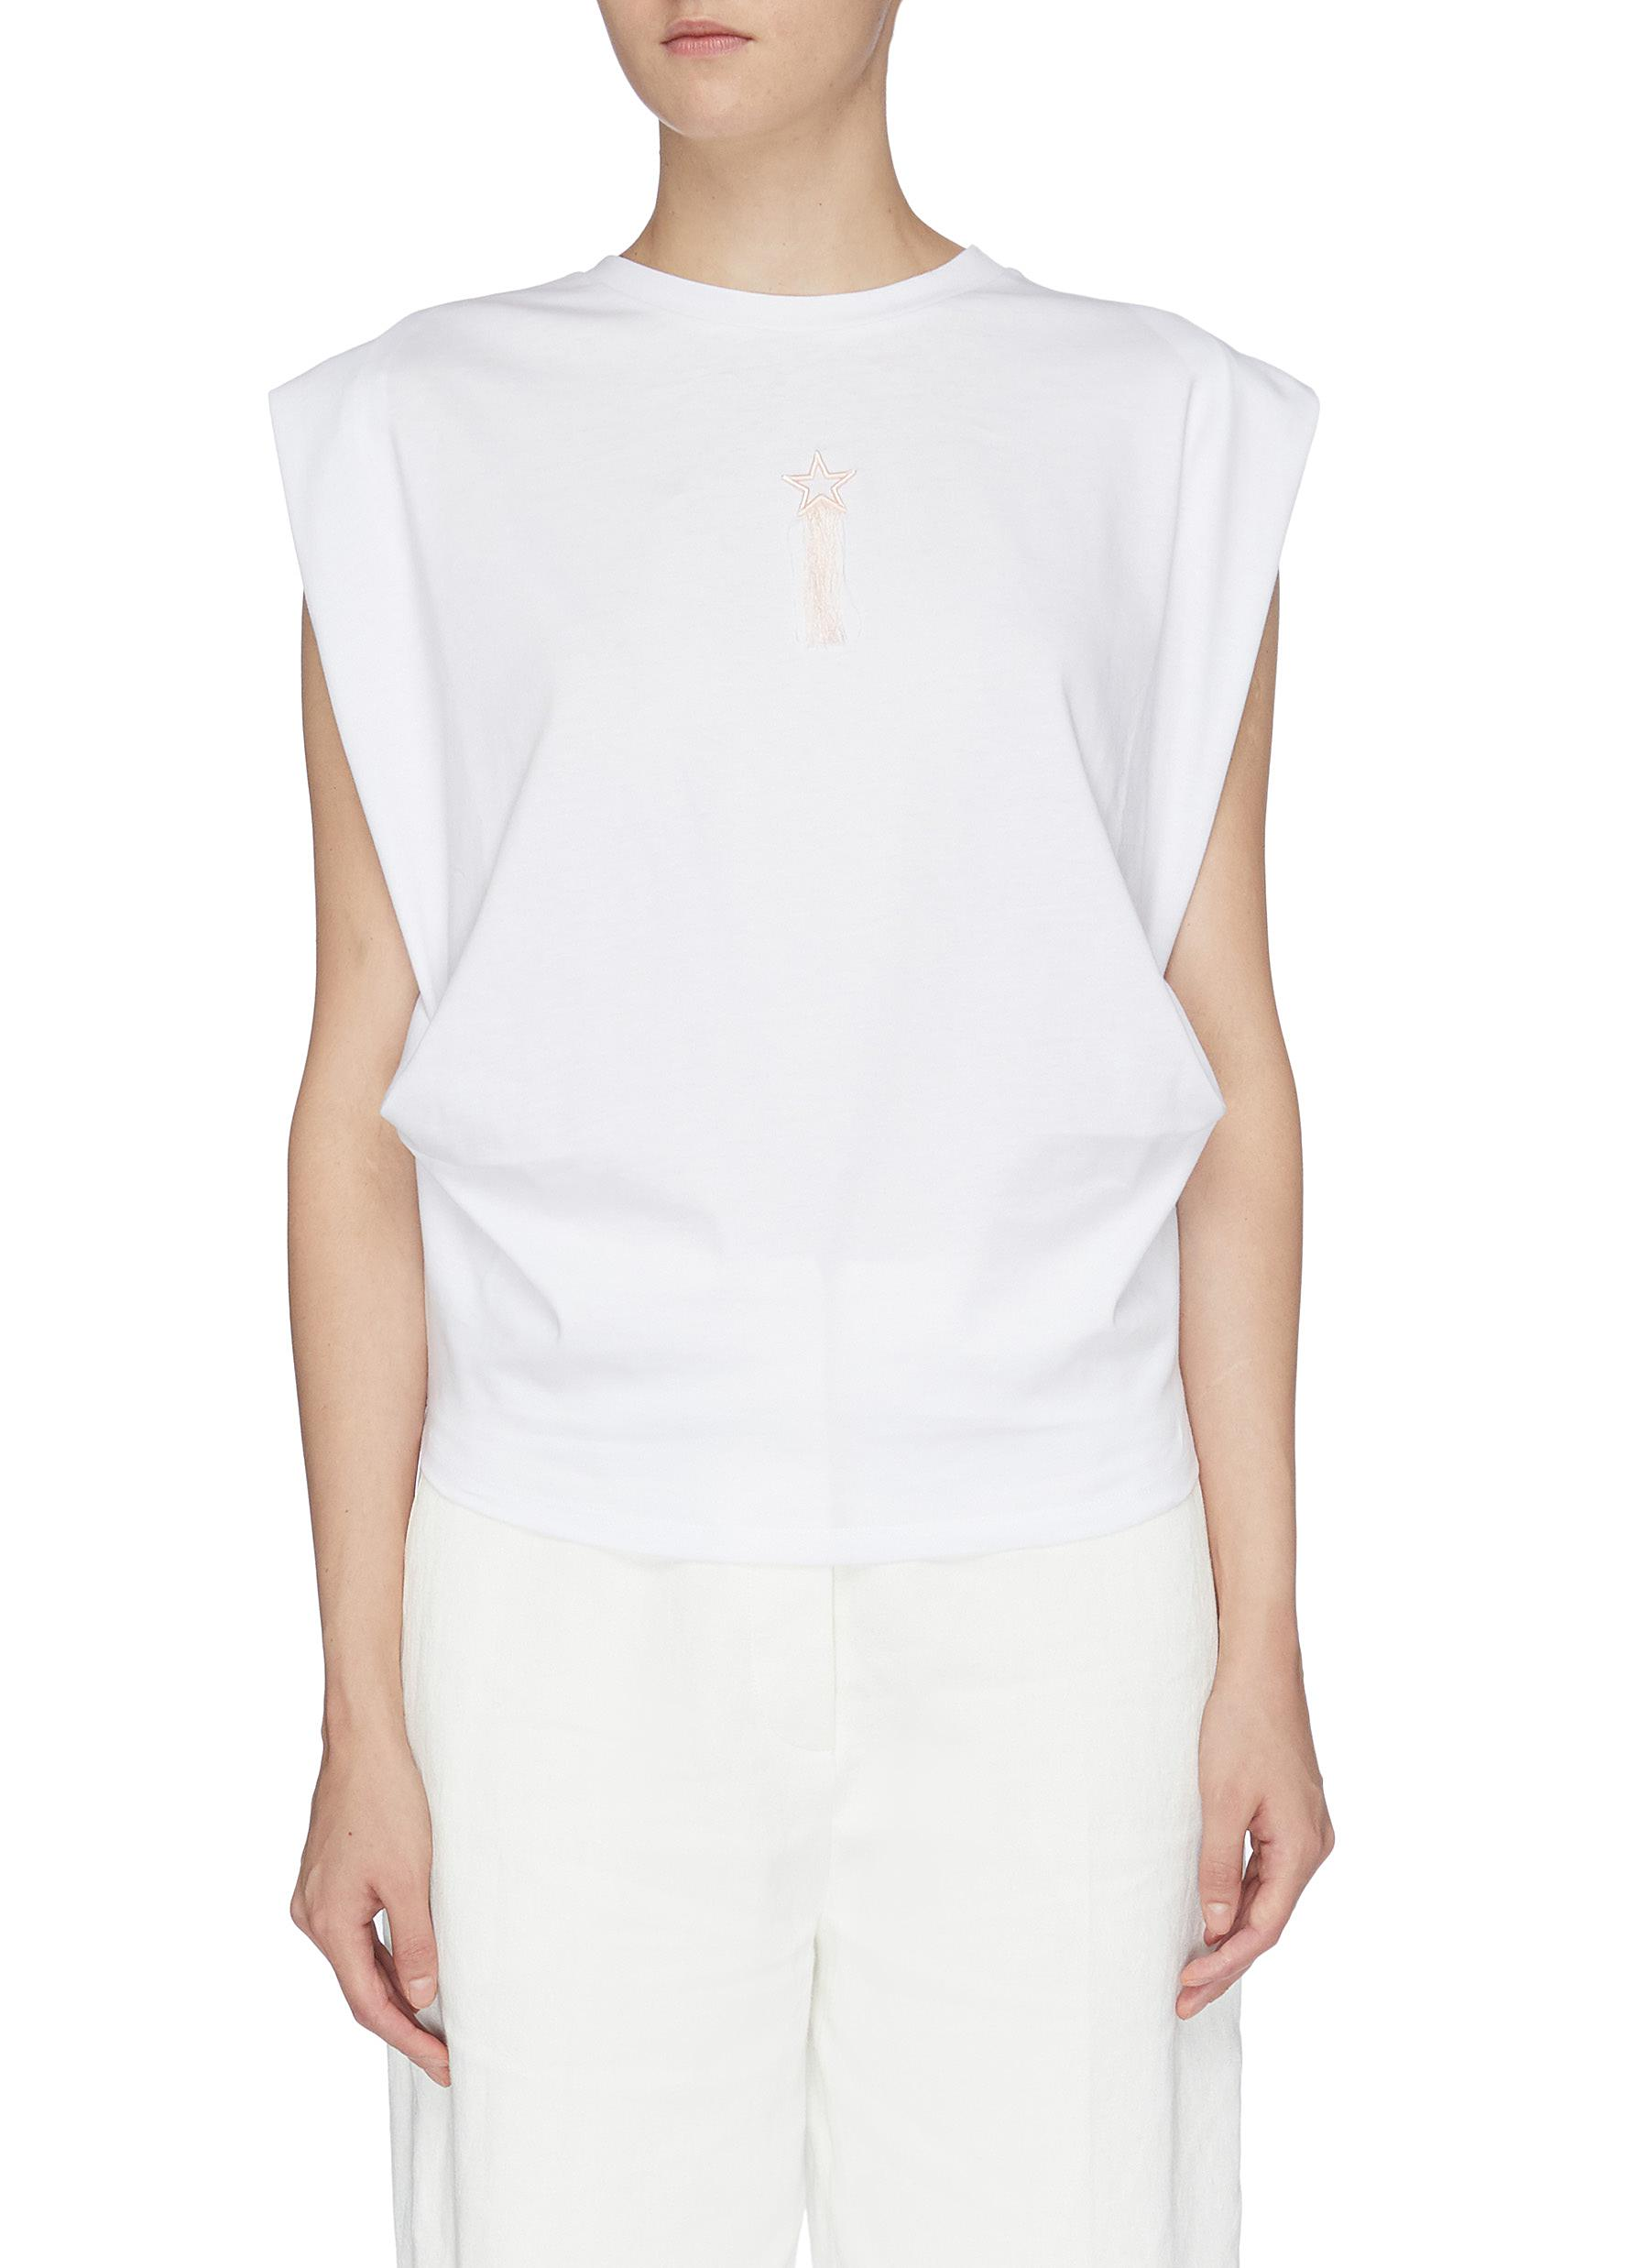 Mini Star pintuck graphic print top by Stella Mccartney